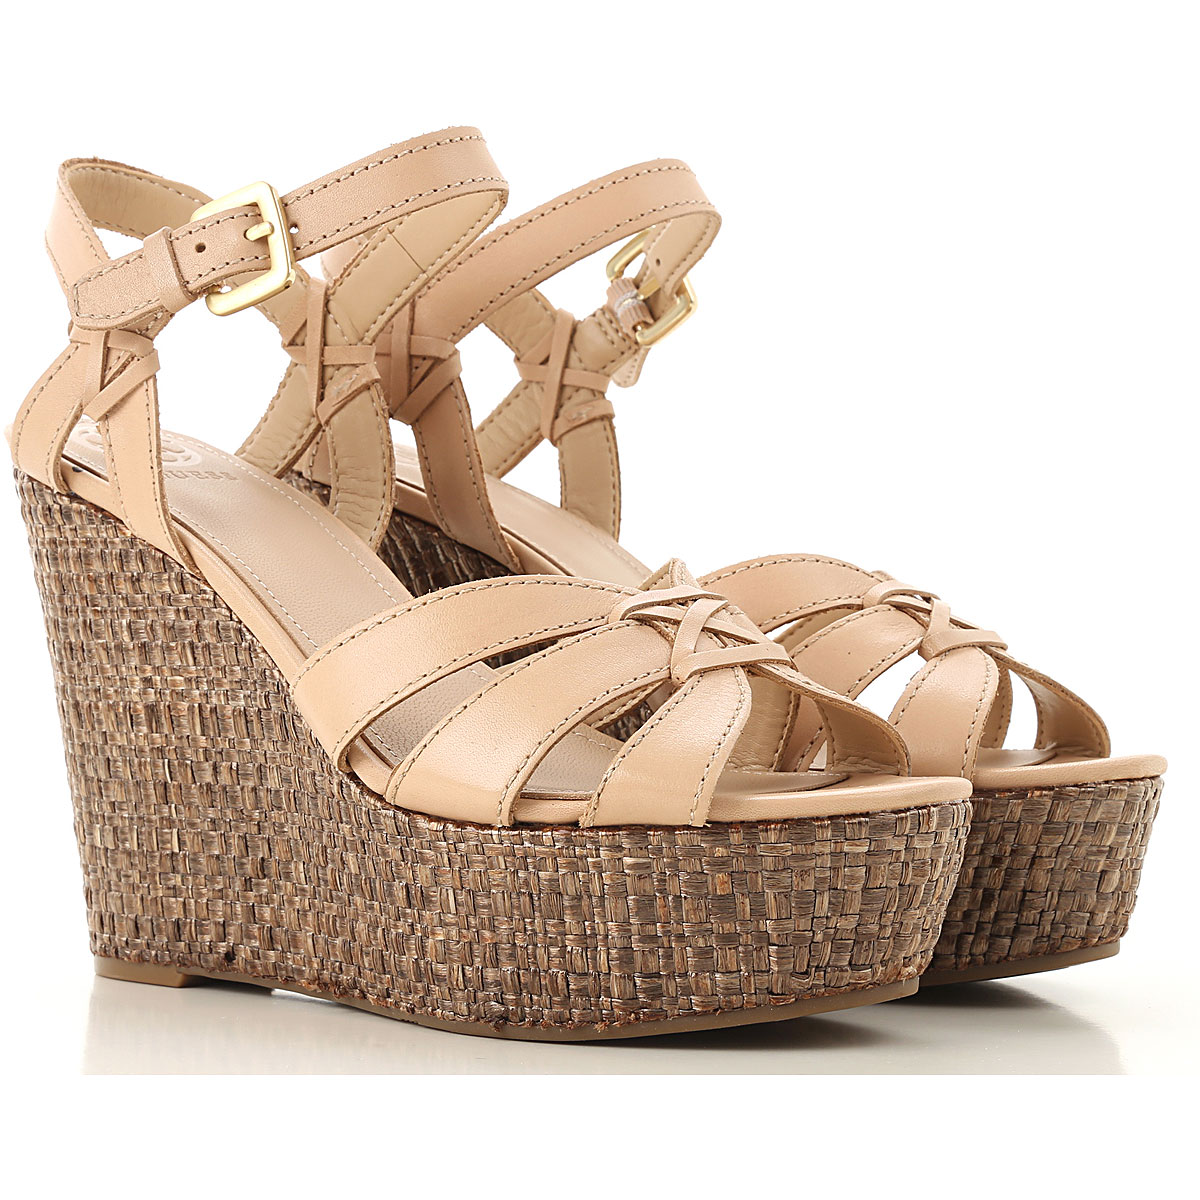 Guess Wedges for Women Beige USA - GOOFASH